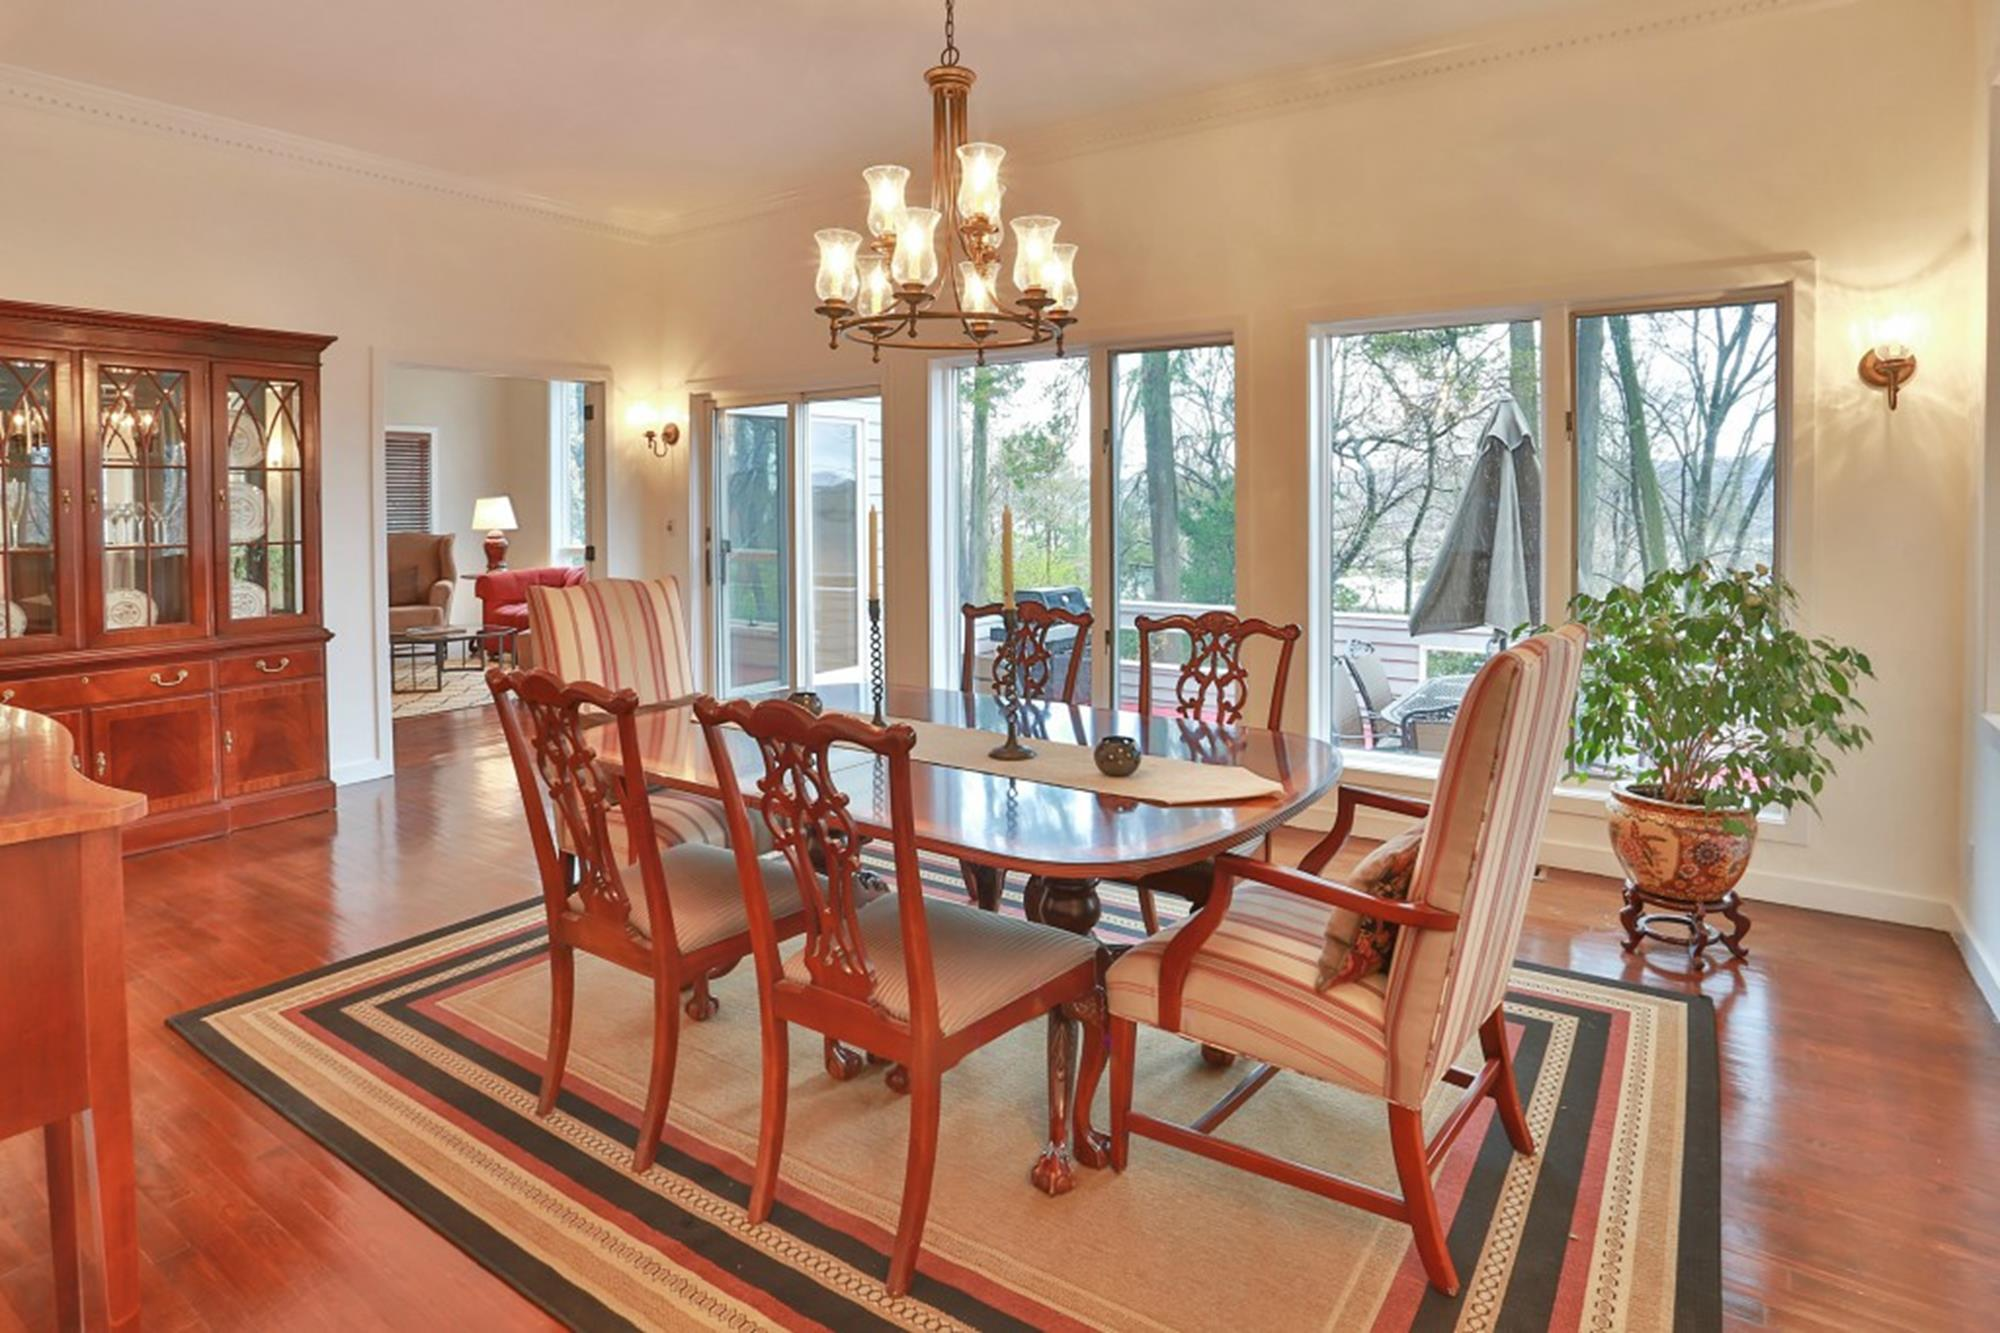 ESTATE AREA: Bright & Airy 6-Bd. Contemporary-Style House w/ Deck on Private Cul-de-Sac